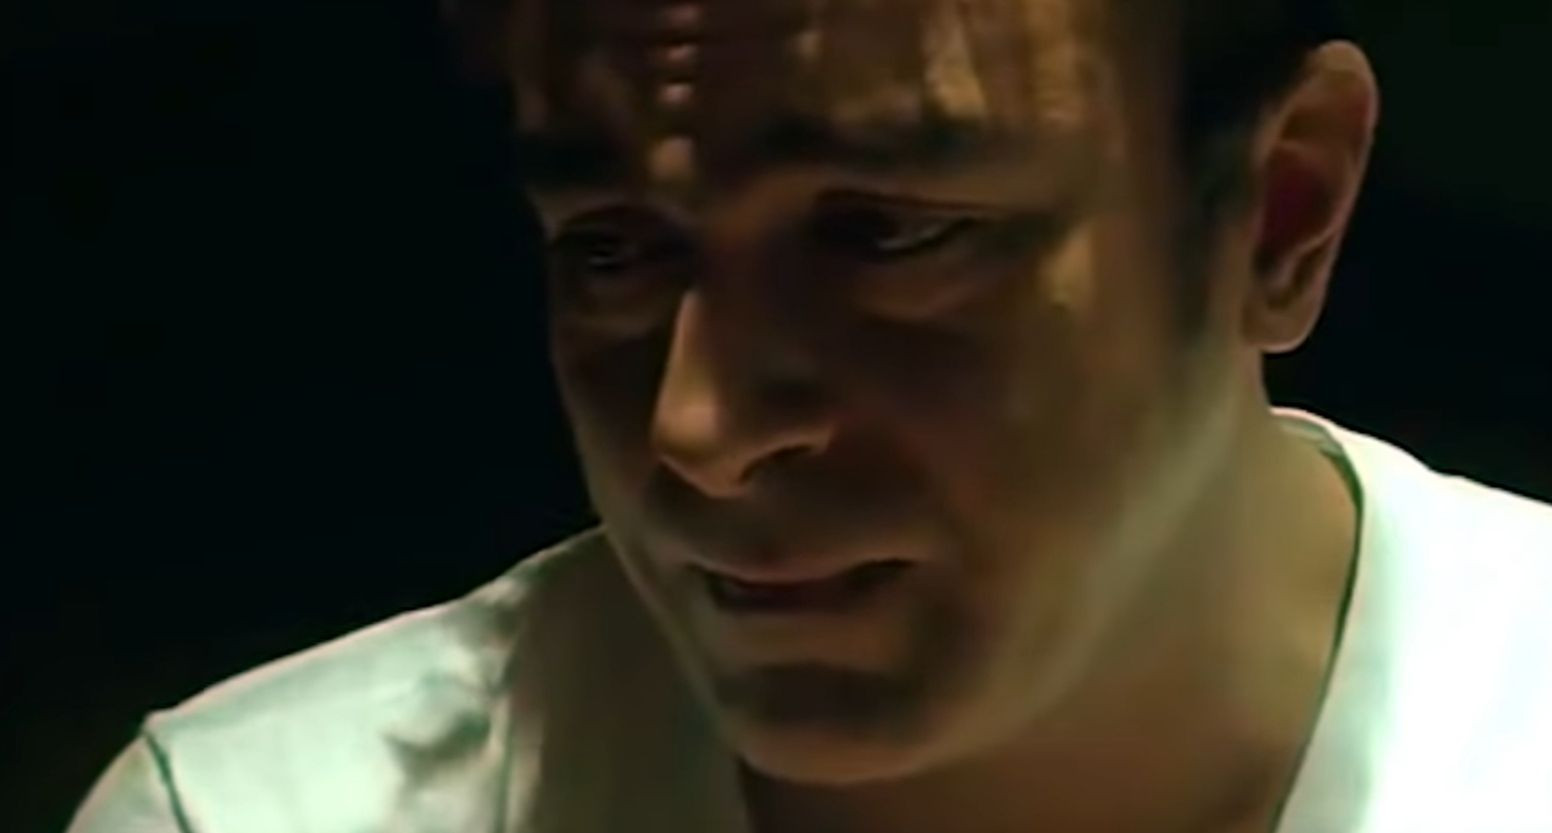 Mansoor, played by Shaan, is falsely accused of terrorism and is tortured by American authorities